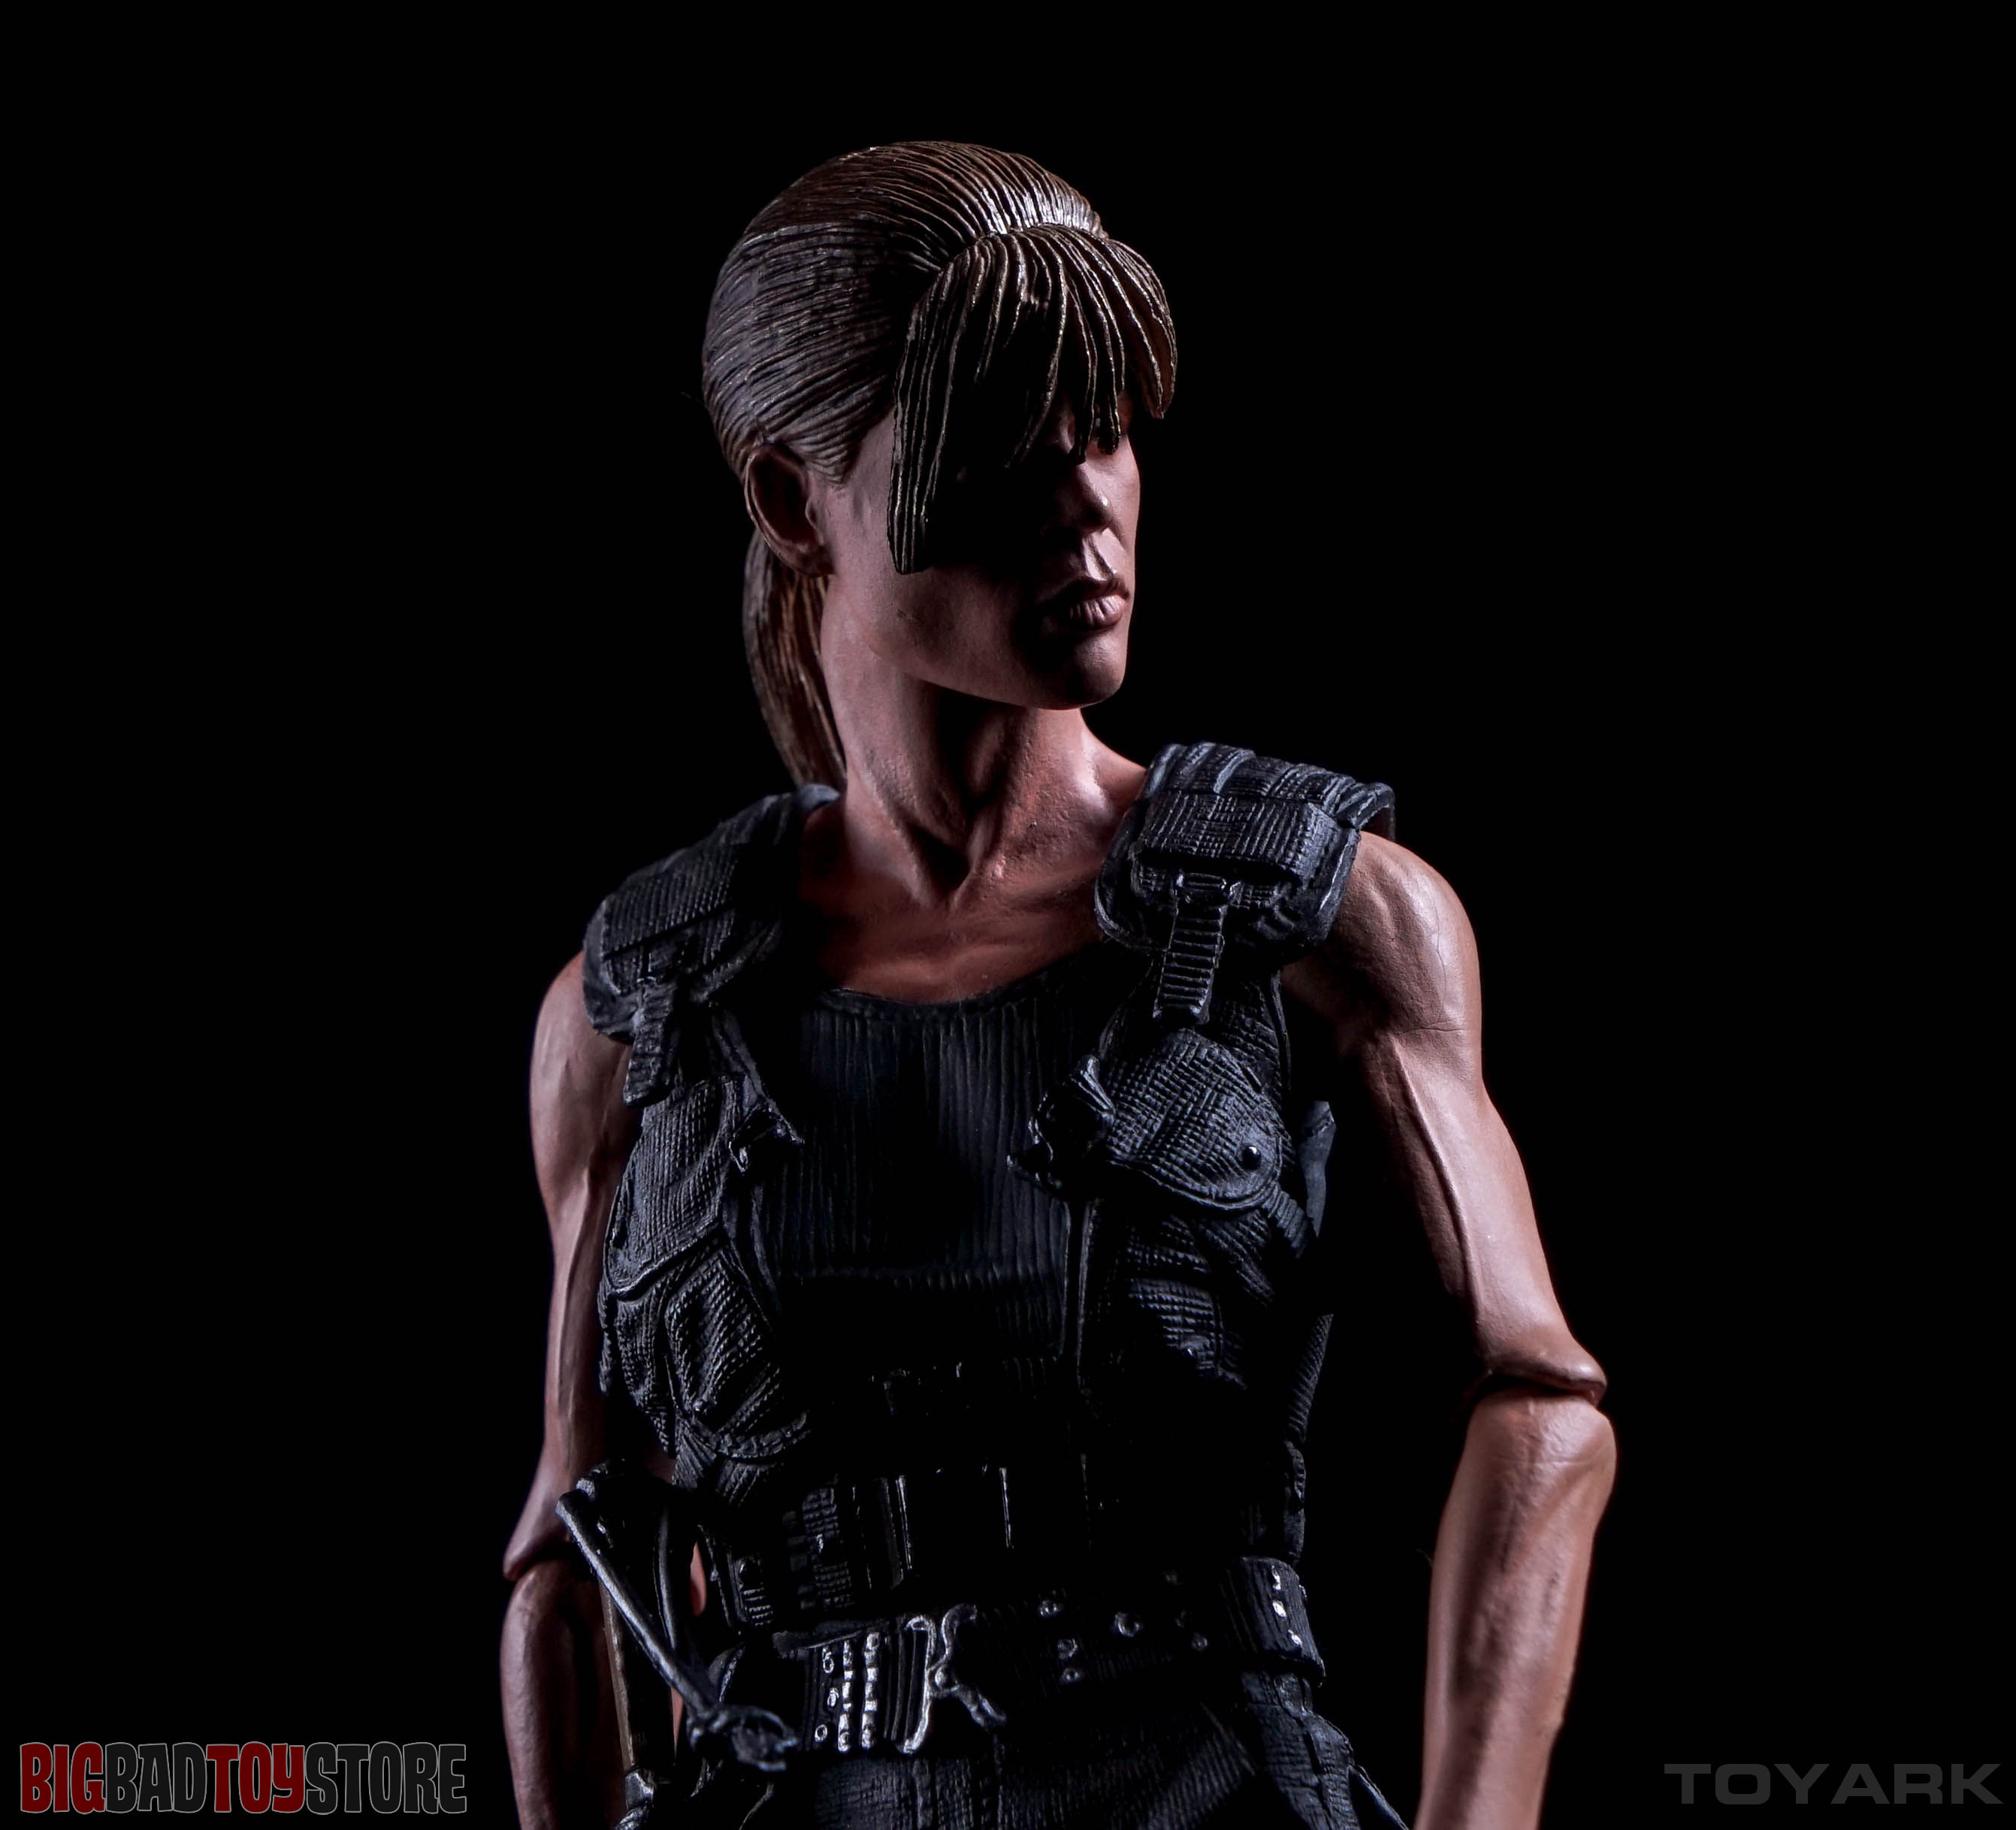 http://news.toyark.com/wp-content/uploads/sites/4/2016/01/NECA-Terminator-2-Sarah-Connor-046.jpg